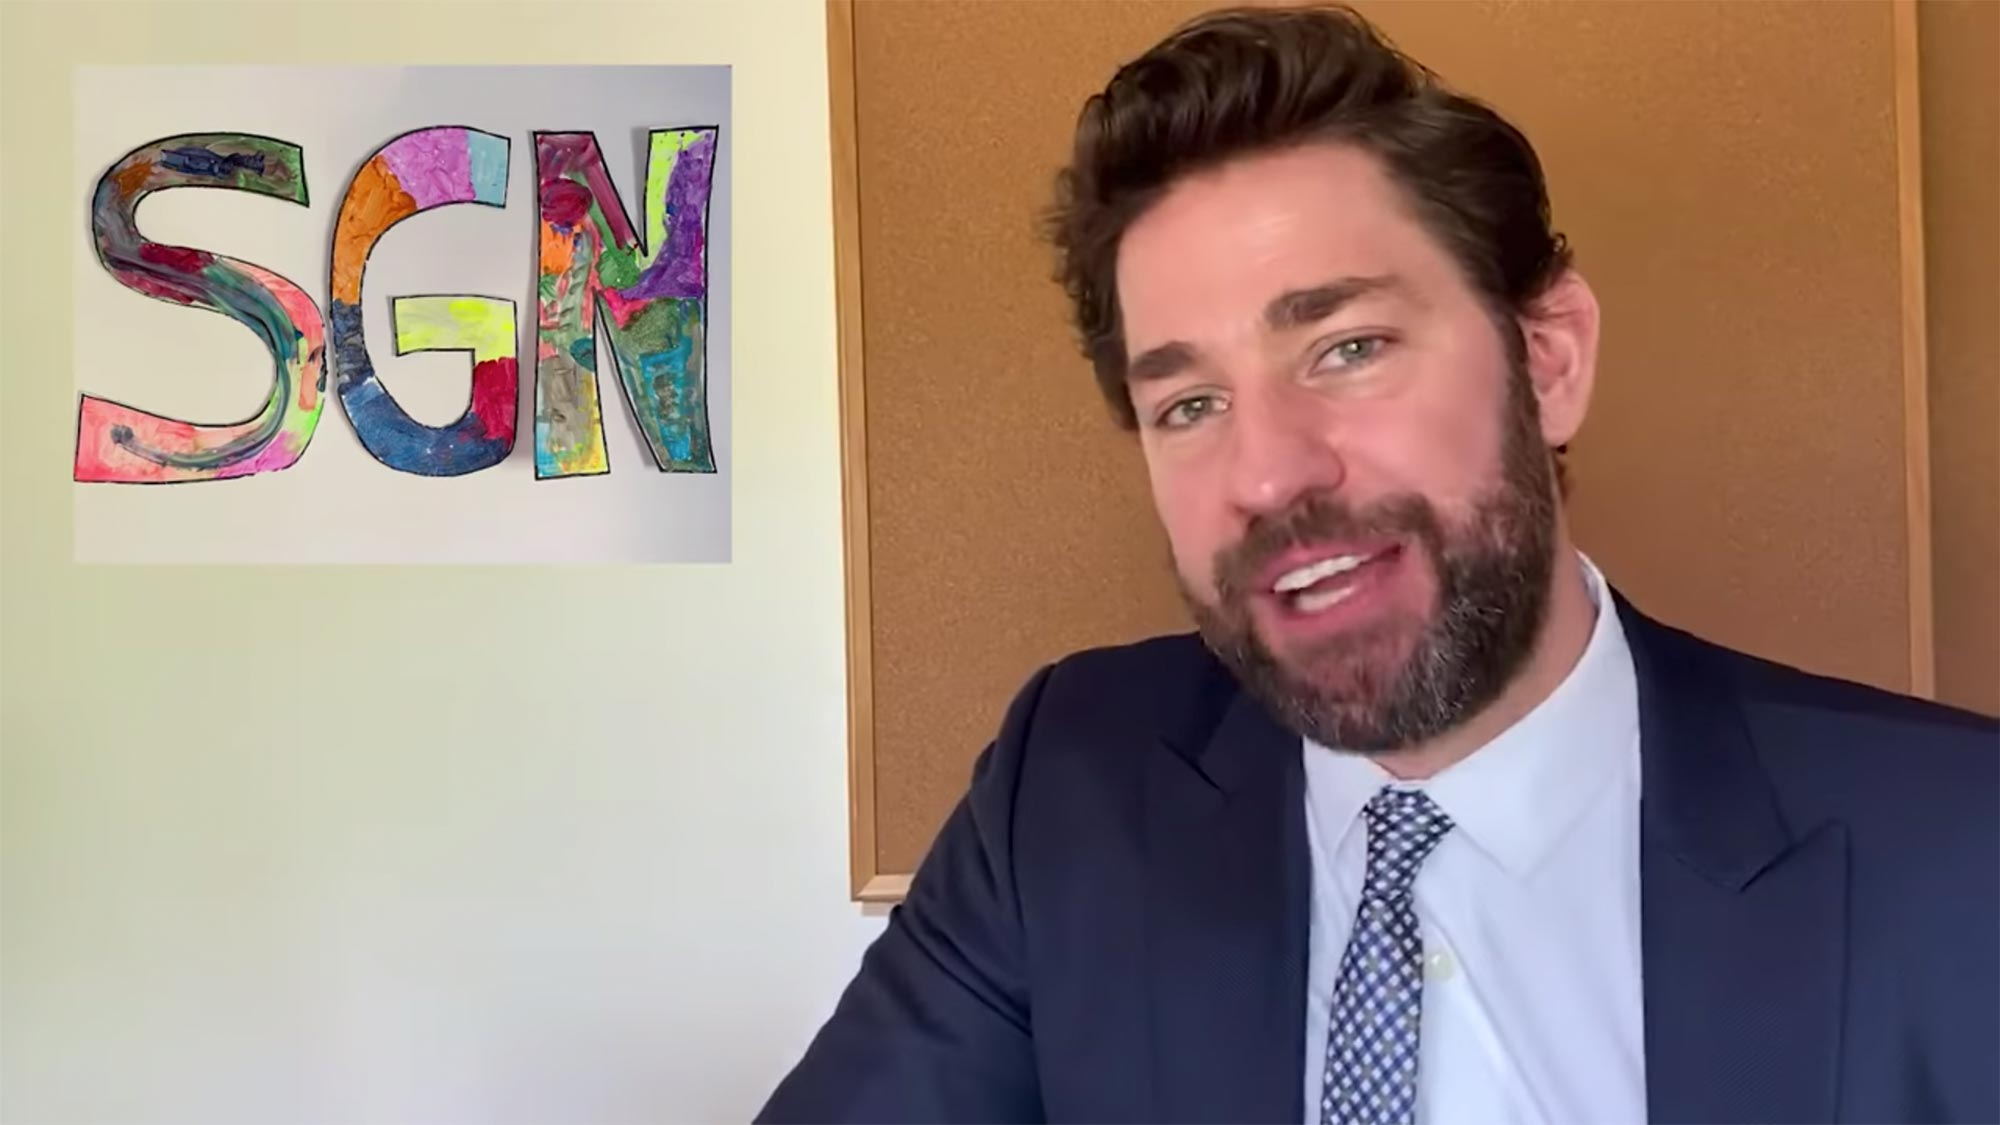 Some Good News with John Krasinski: The SGN Community Episode!